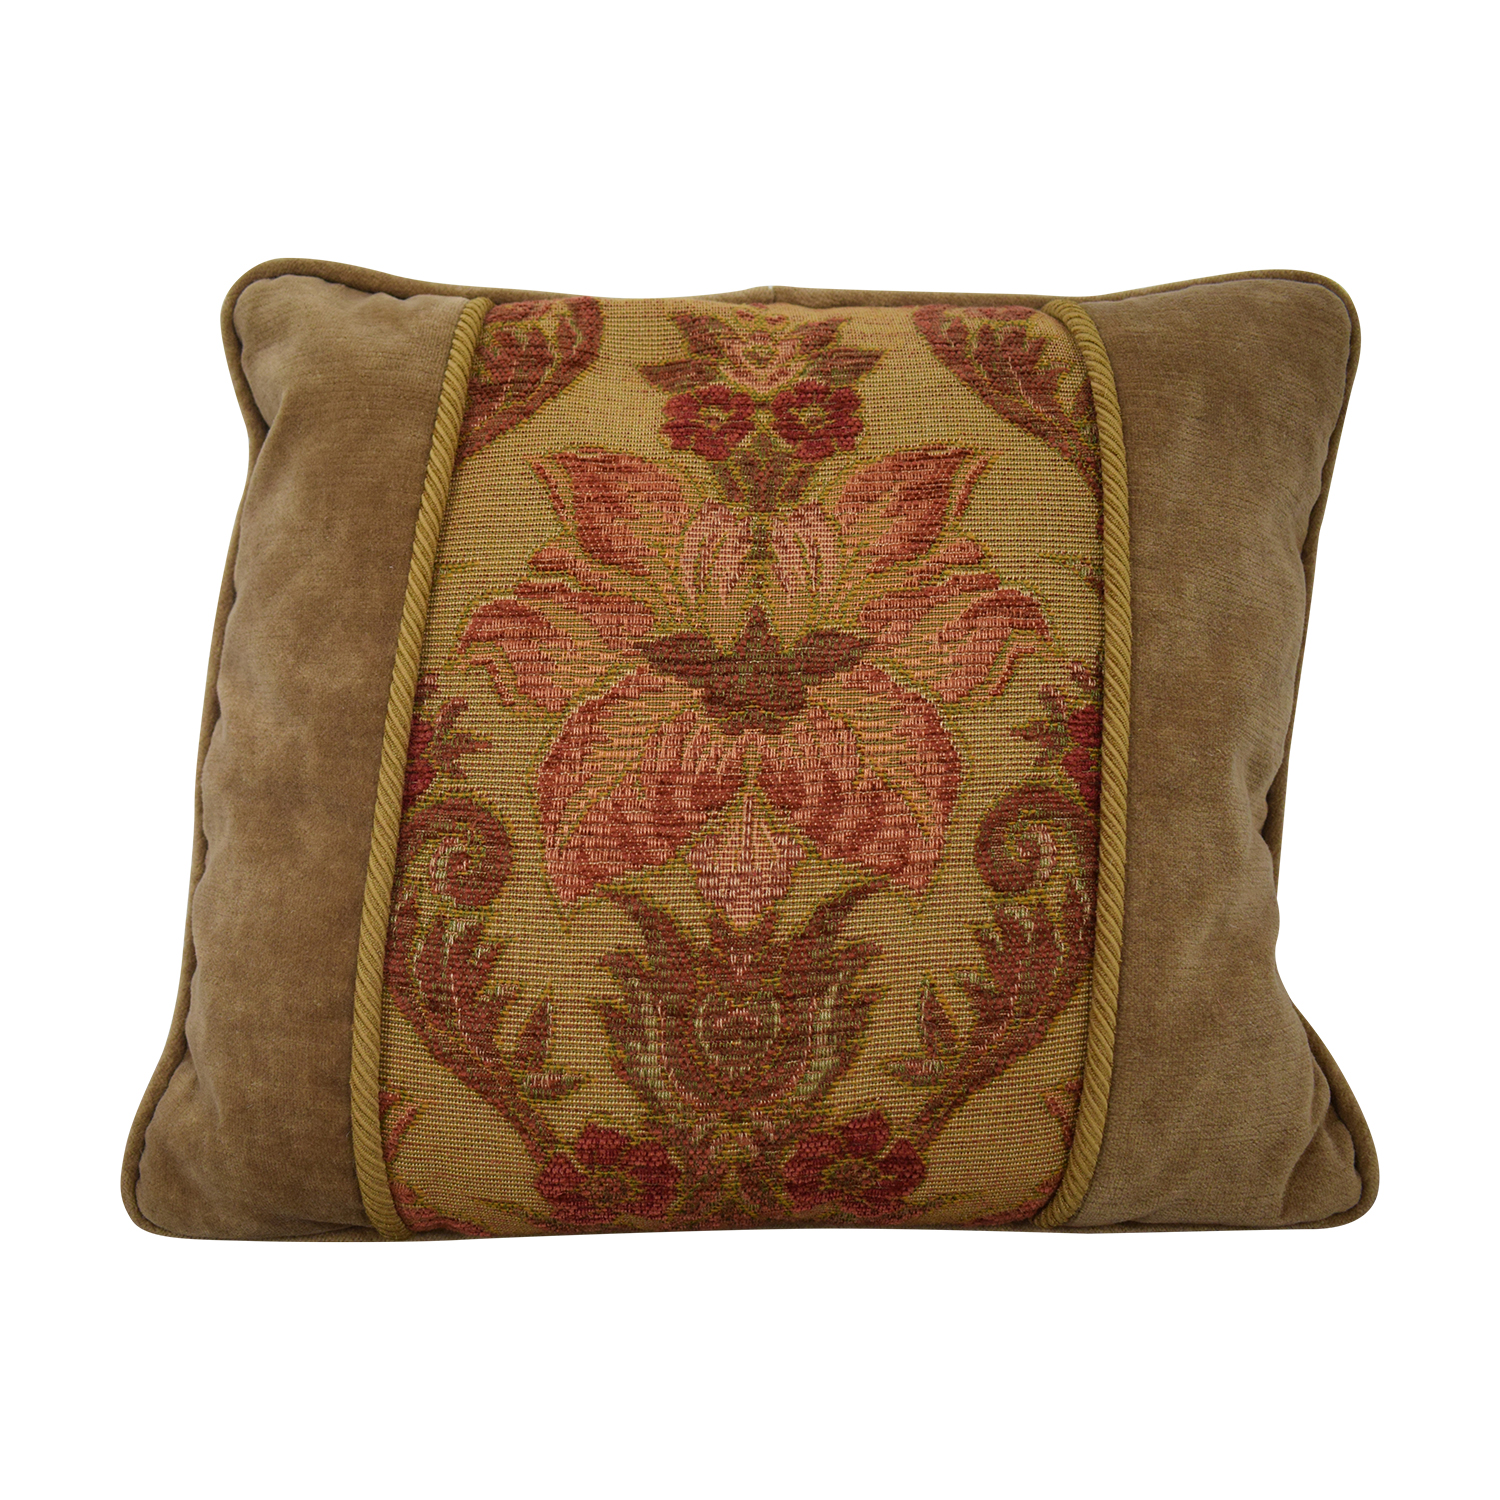 Custom Made Beige Multi-Colored Decorative Pillow for sale